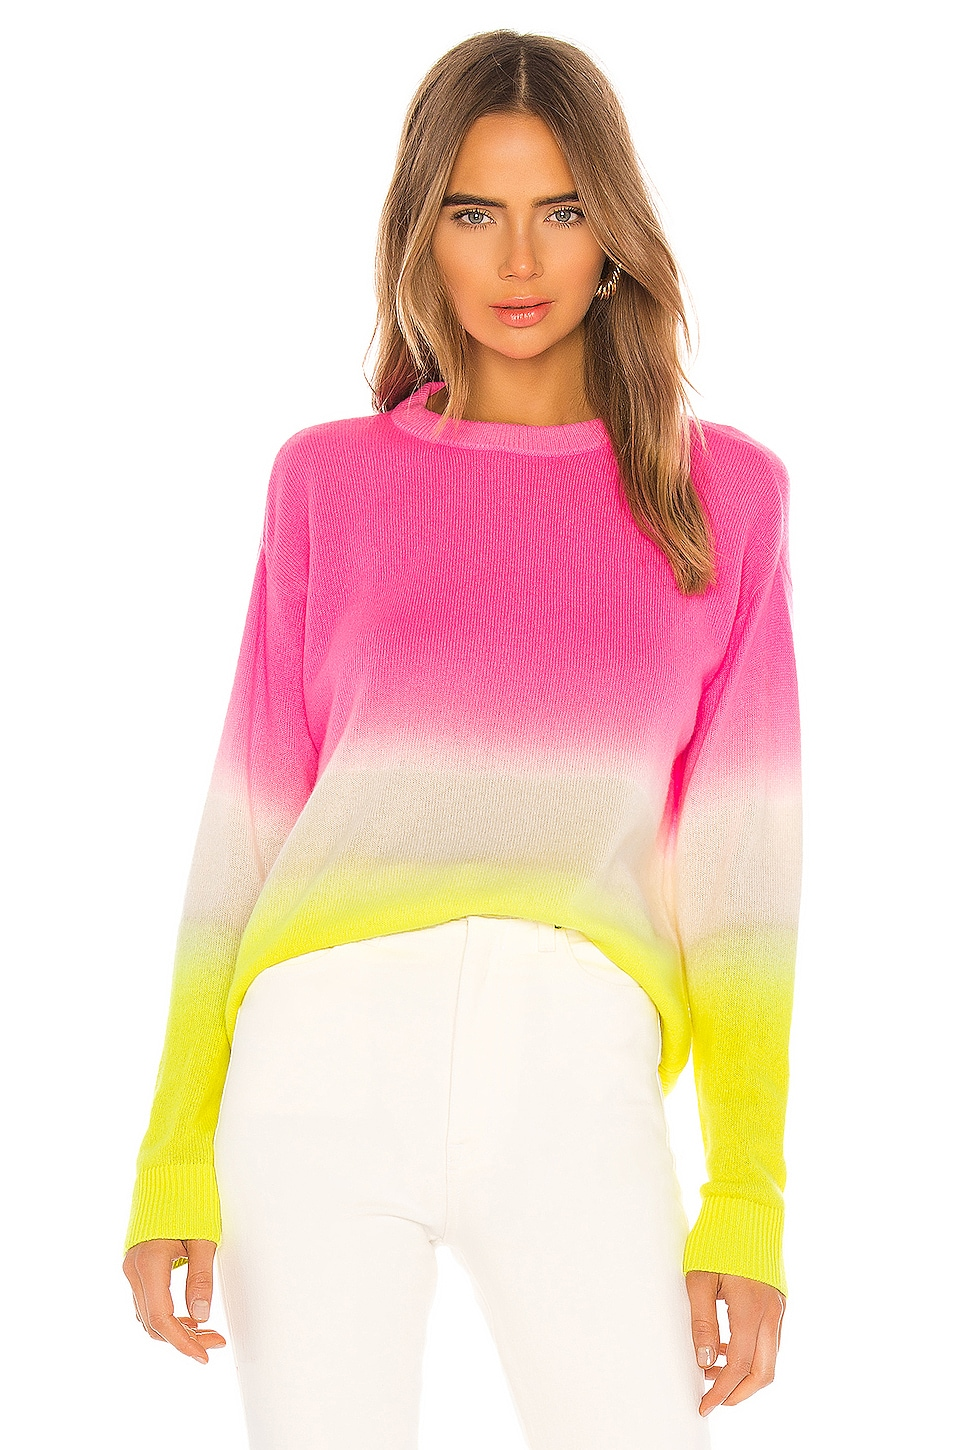 Alice + Olivia Gleeson Cashmere Blend Dip Dye Long Sleeve Pullover in Neon Pink & White & Neon Yellow